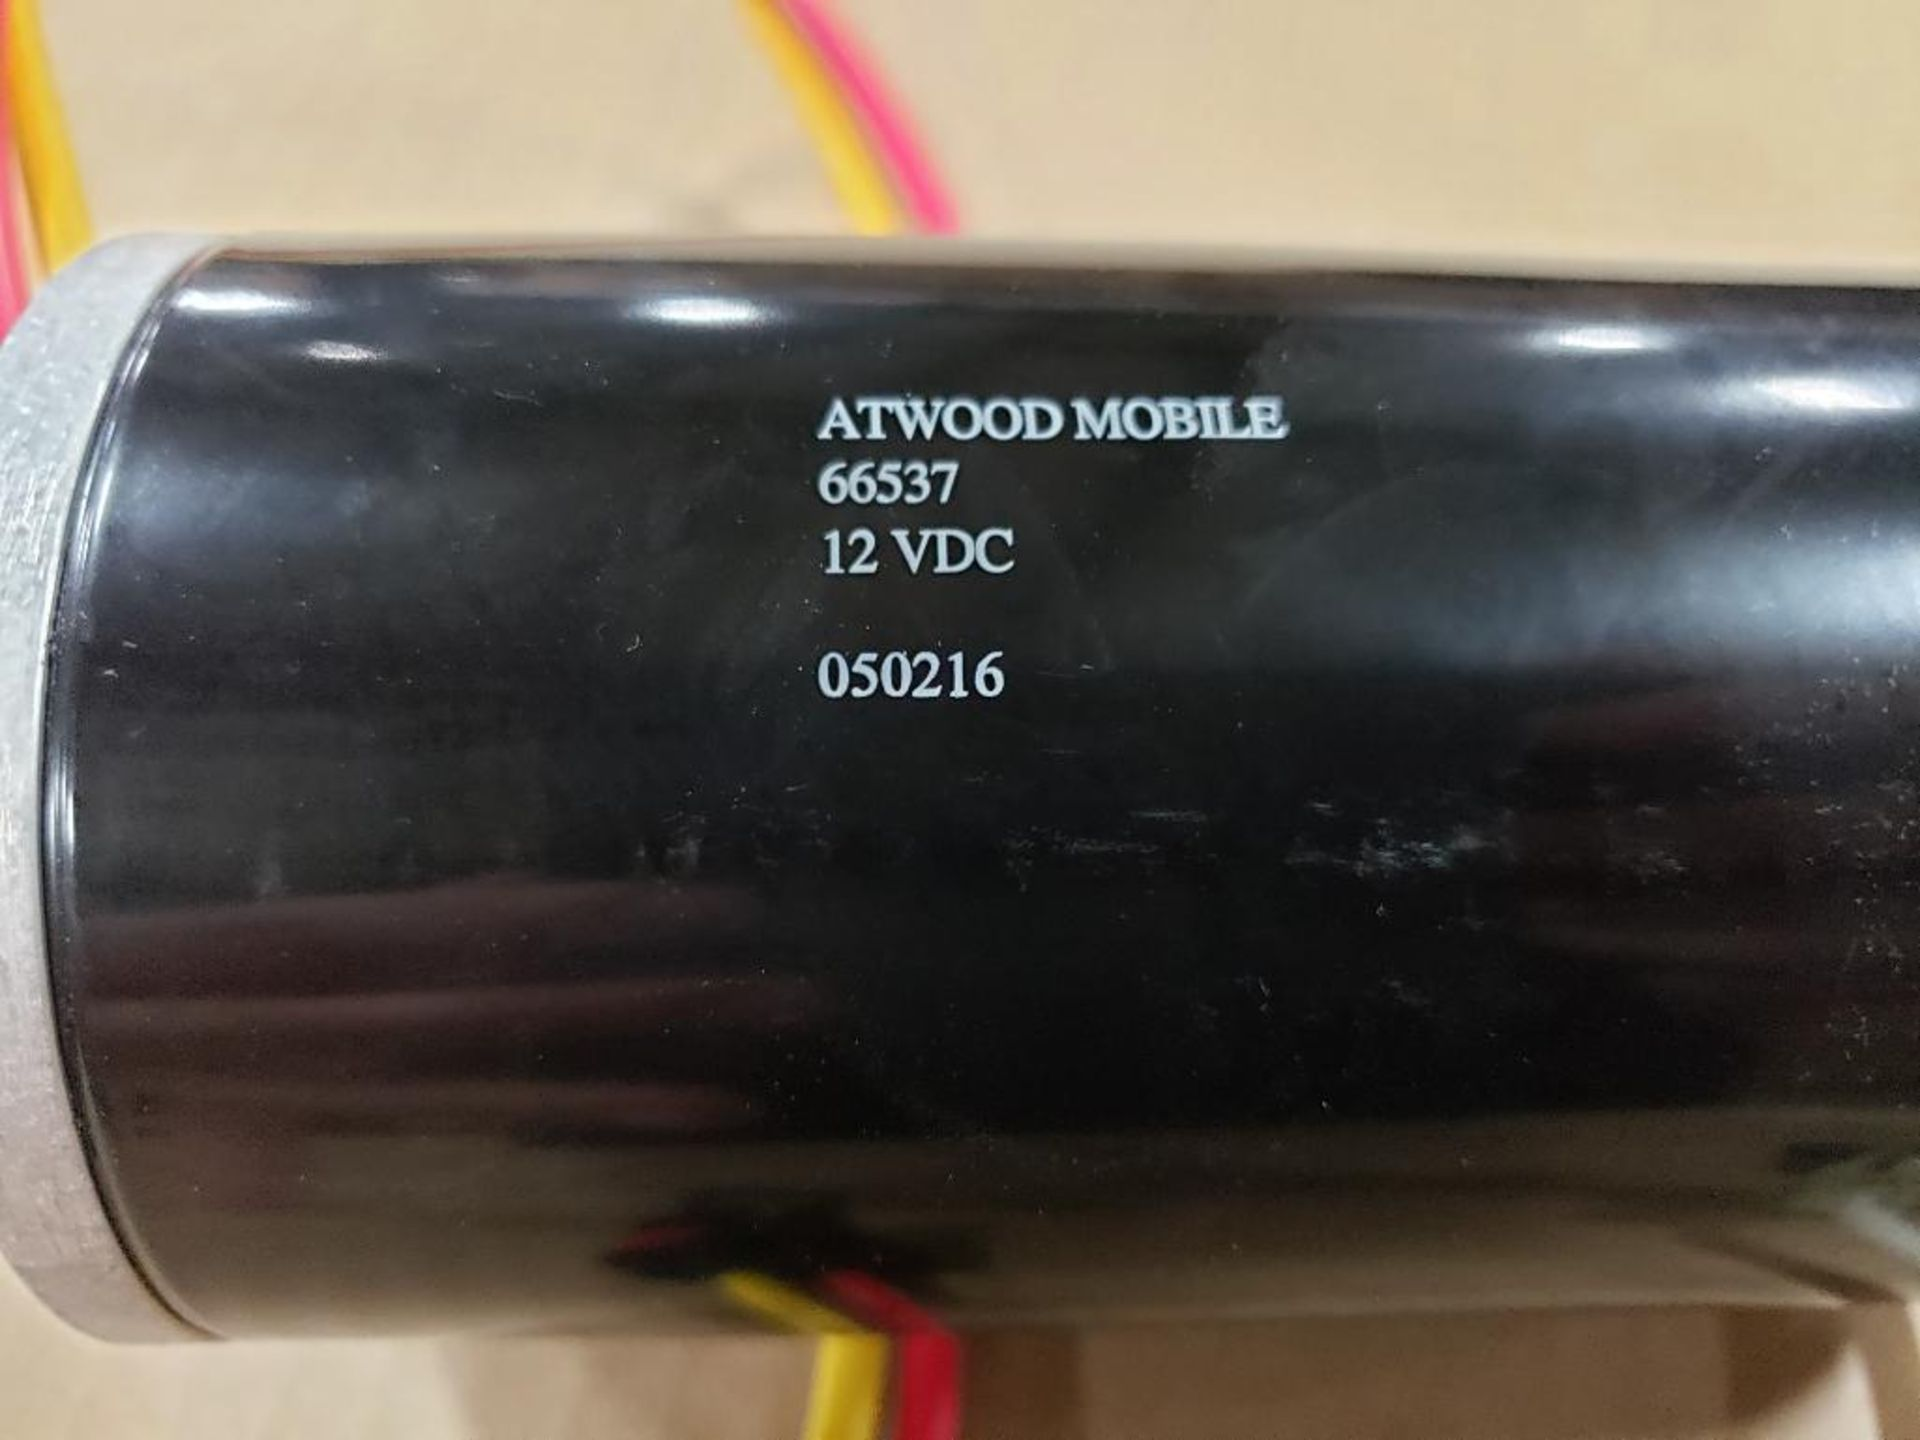 Qty 18 - Chiaphua components PM30R-60F-1004. Atwood Mobile 66537 12VDC Motors. New in box. - Image 4 of 5